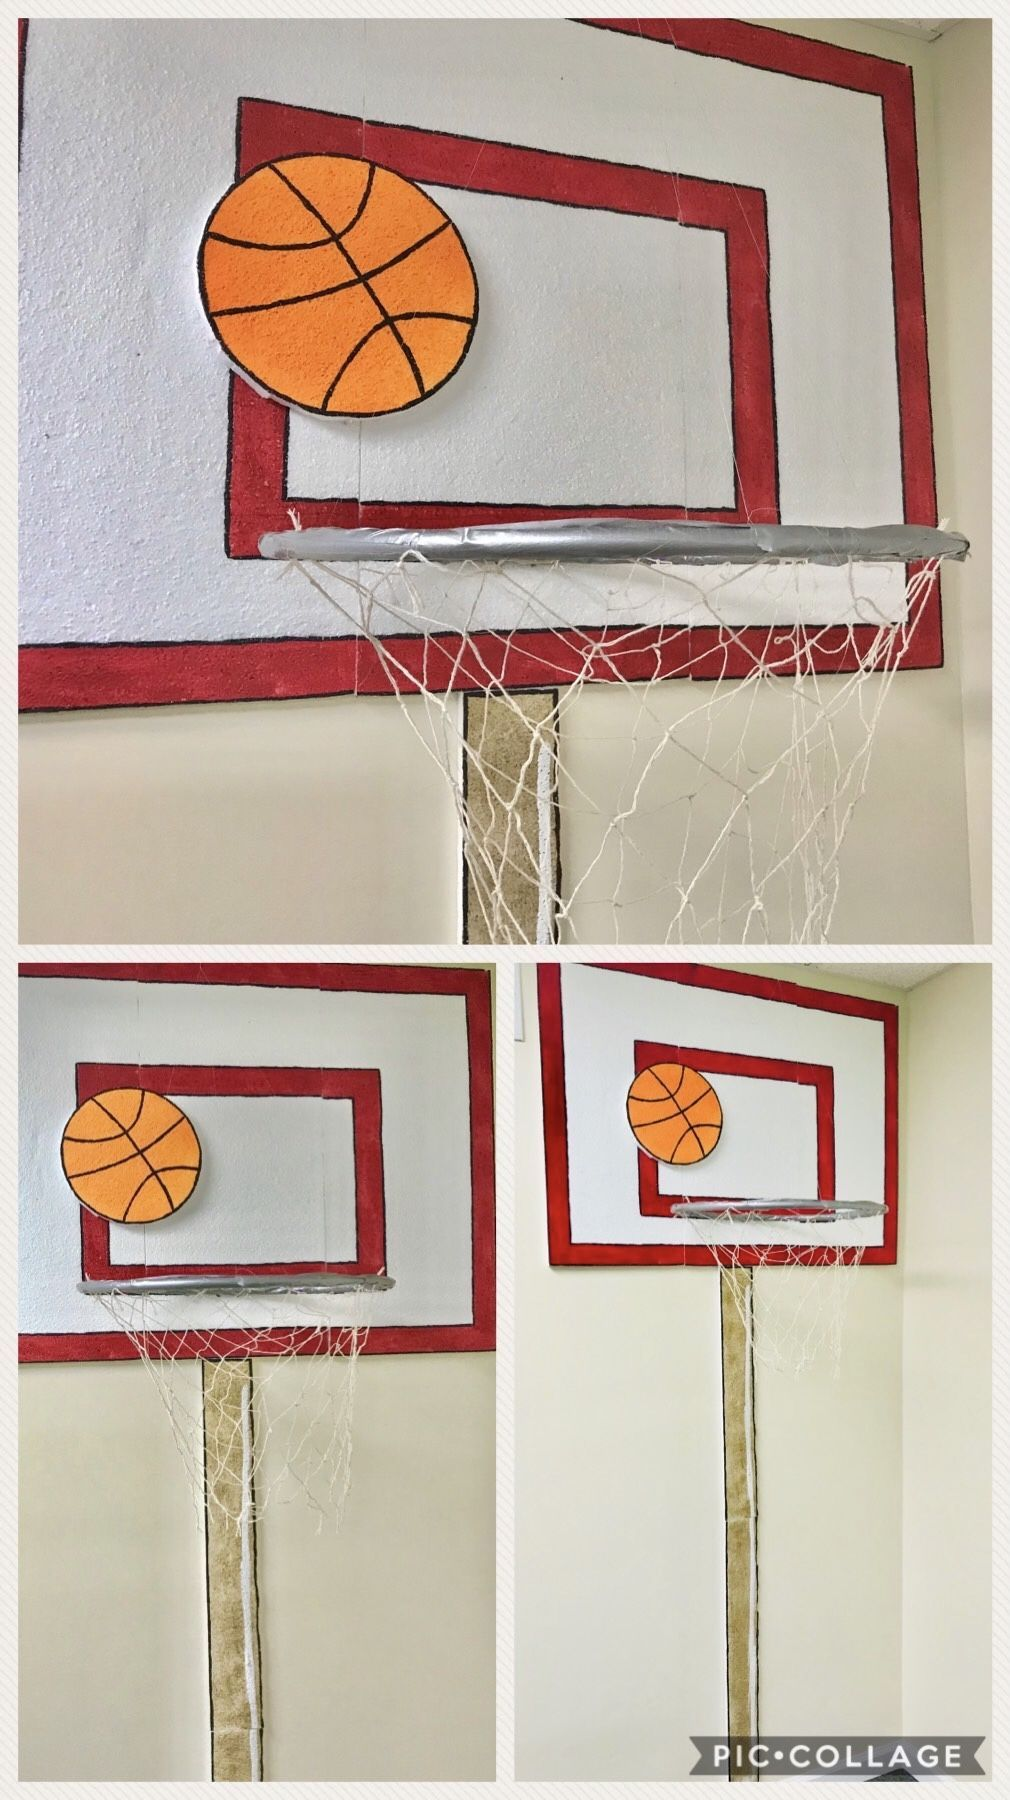 Vbs 2018 Lifeway Game On Decorations Basketball Goal Made From